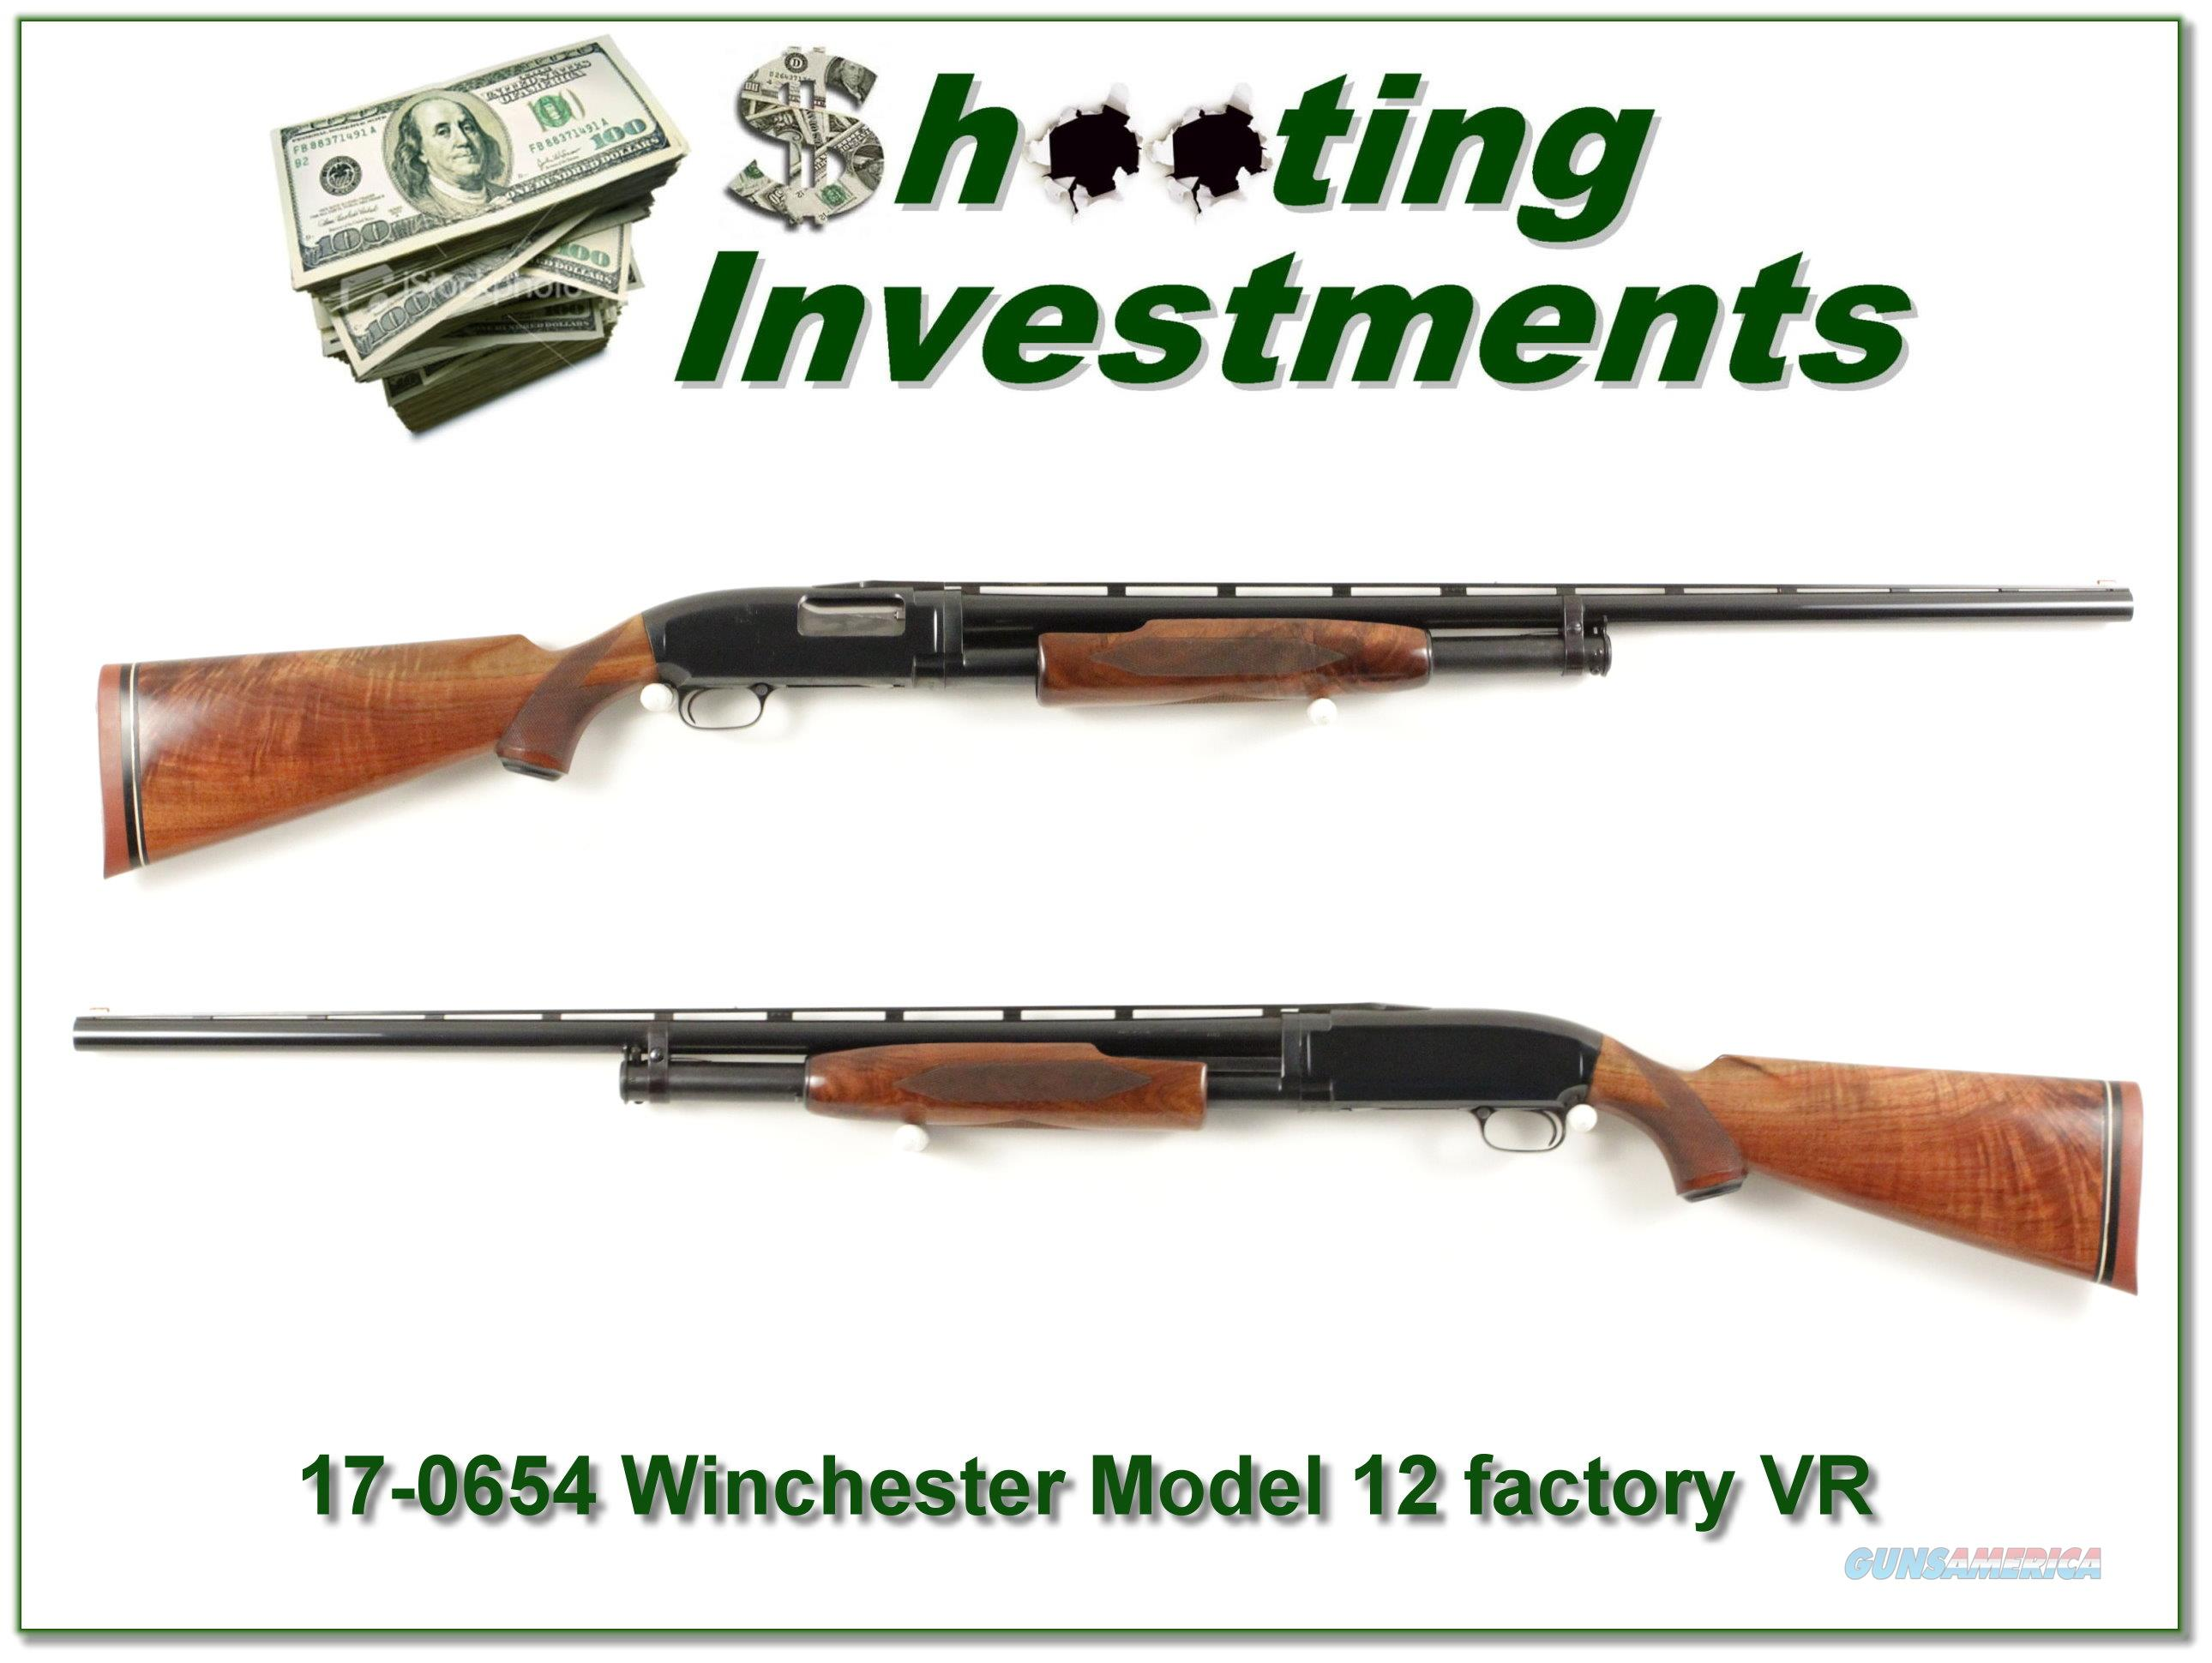 Winchester Model 12 Trap 1962 Factory Vent Rib!  Guns > Shotguns > Winchester Shotguns - Modern > Pump Action > Trap/Skeet